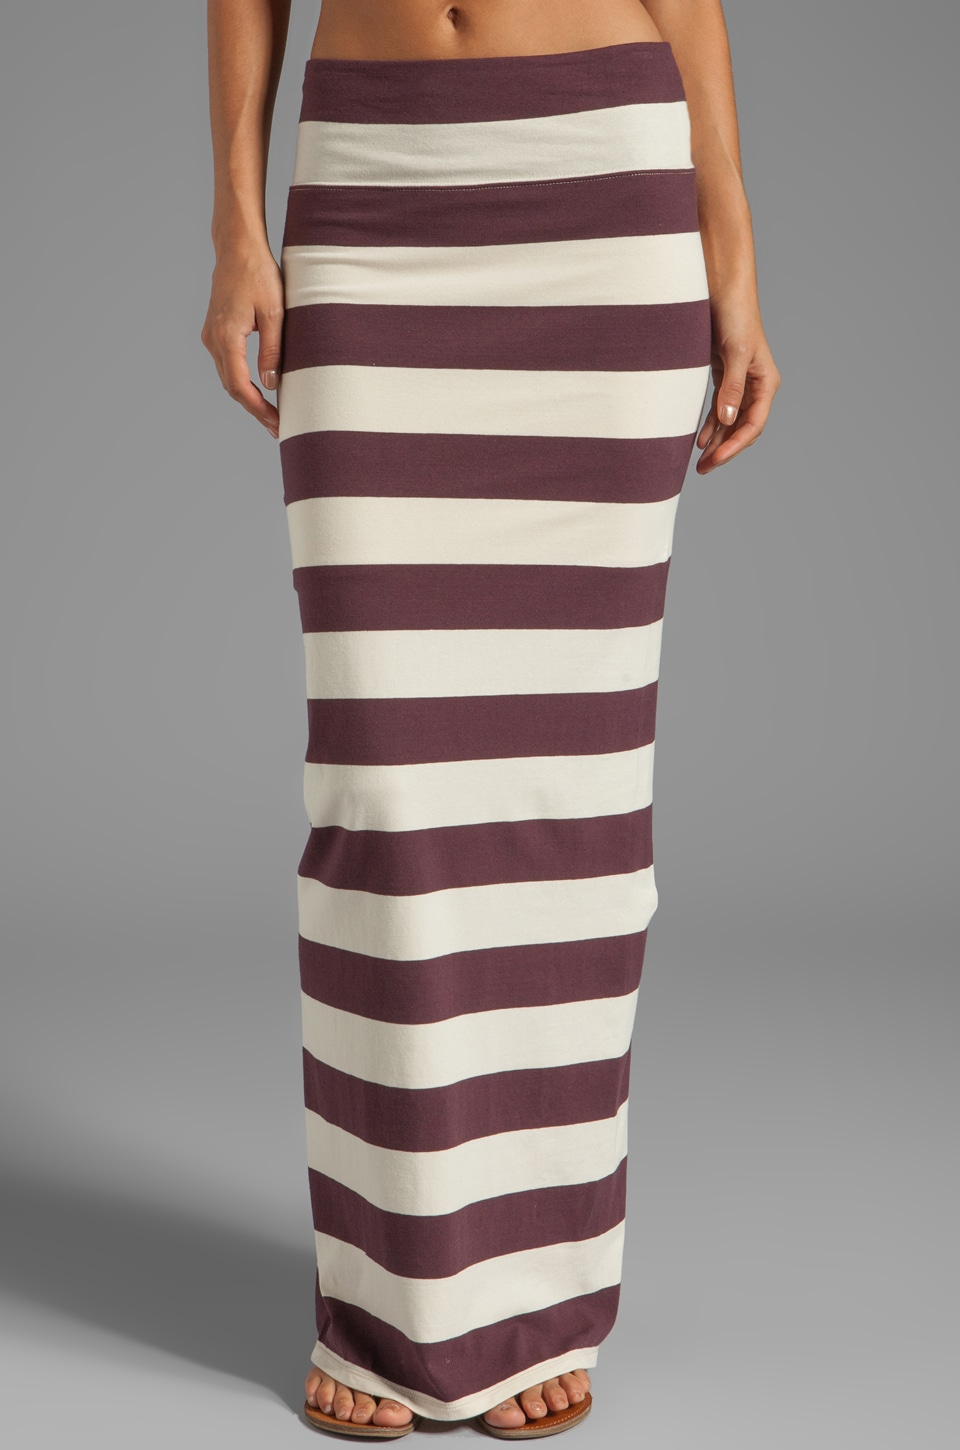 Free People Stripe Column Maxi Skirt in Aubergine/Oatmeal Combo